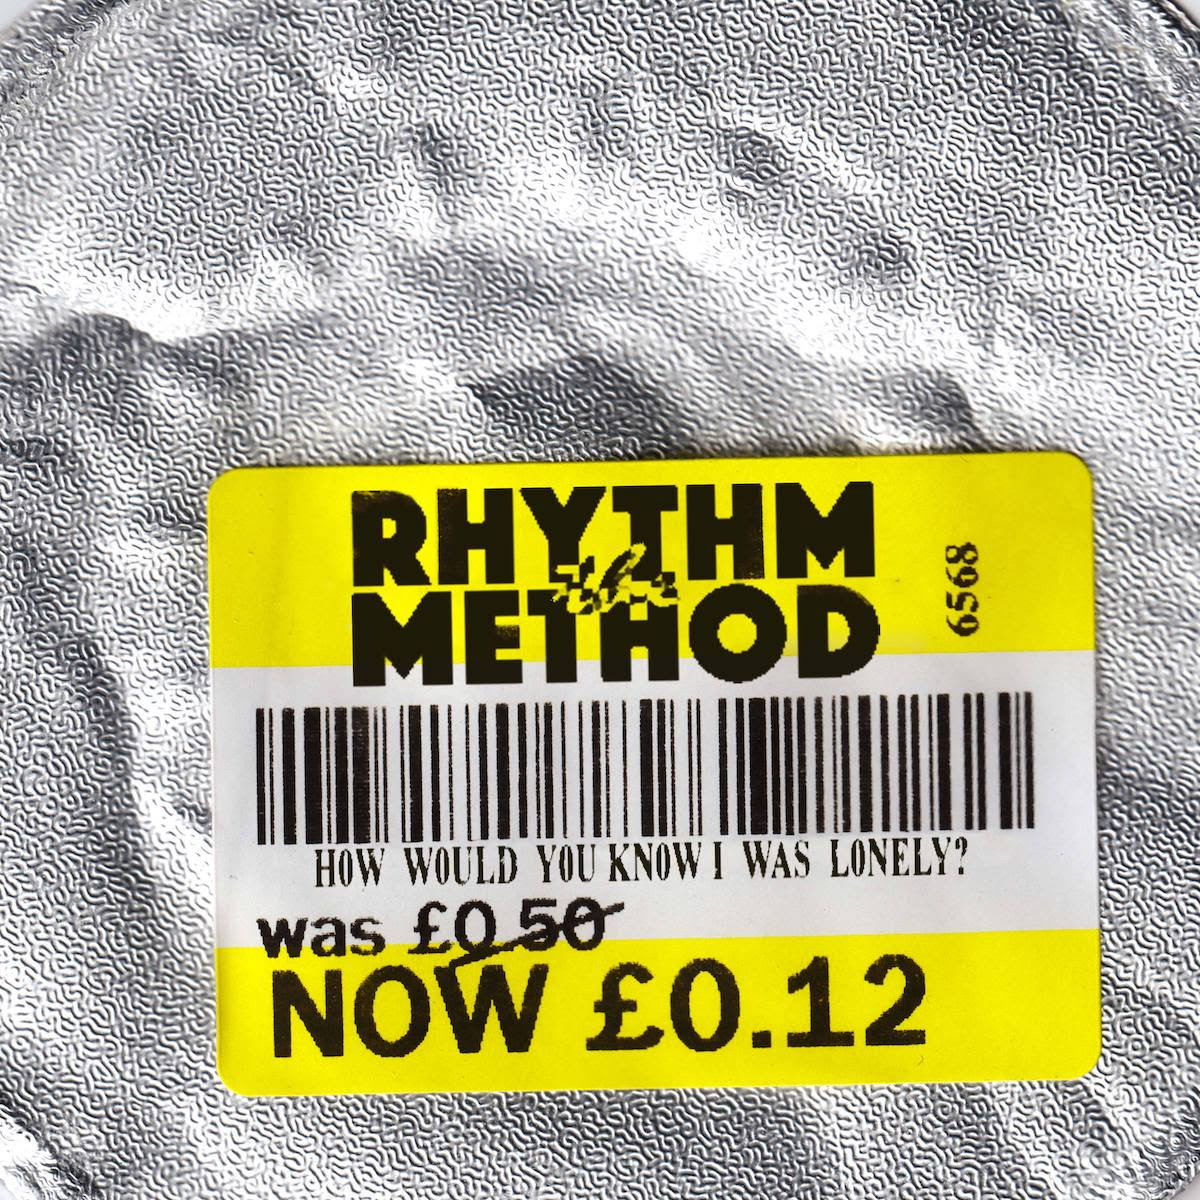 The Rhythm Method's debut LP is an exhilarating, warts-and-all ode to the British weekend